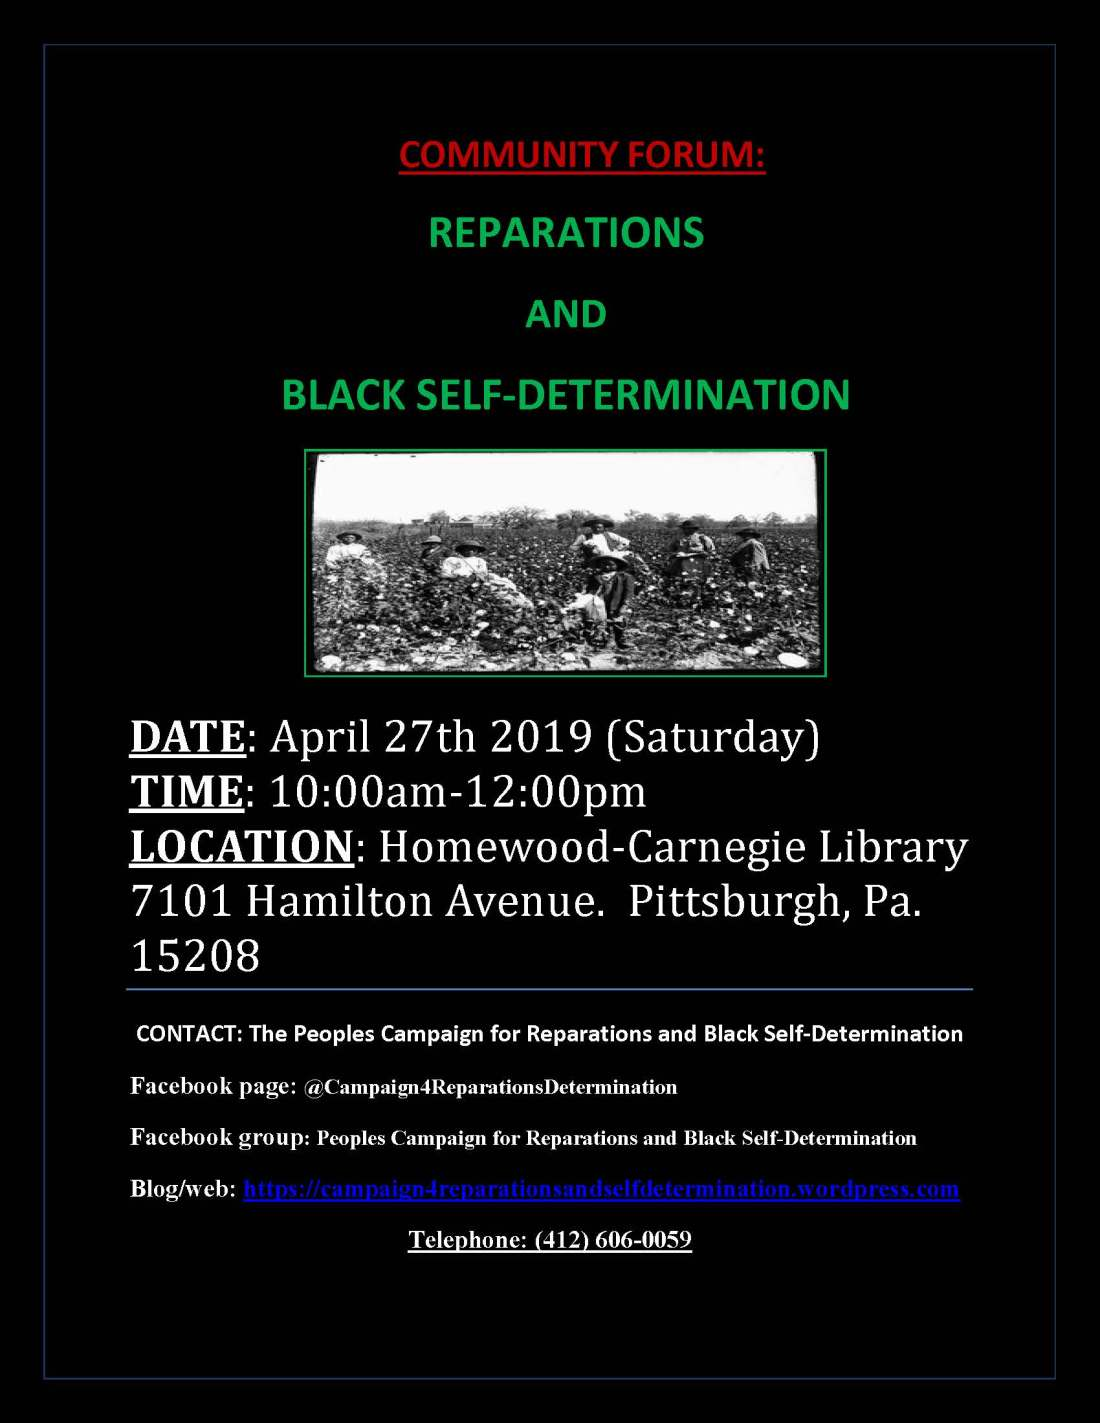 Campaign for Reparations and Self-Determination meeting flyer, 4-27-19